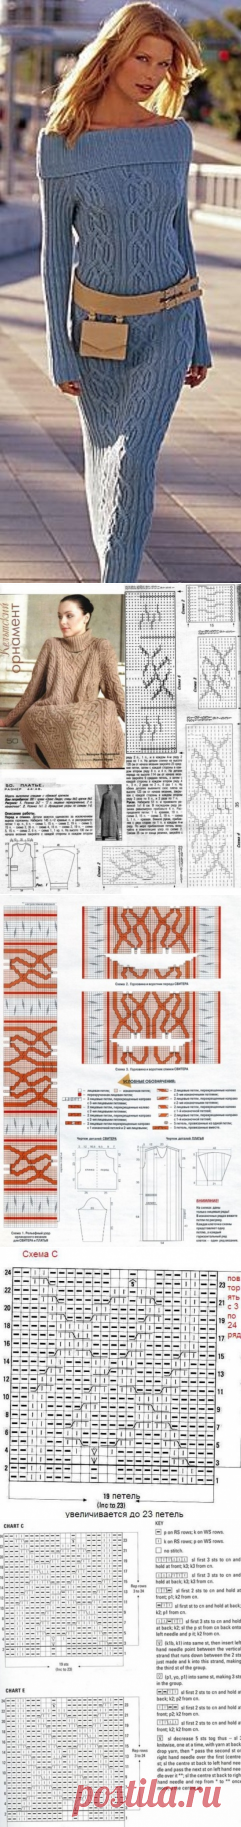 Dress Celtic patterns of the scheme. Celtic patterns knitting by scheme spokes |